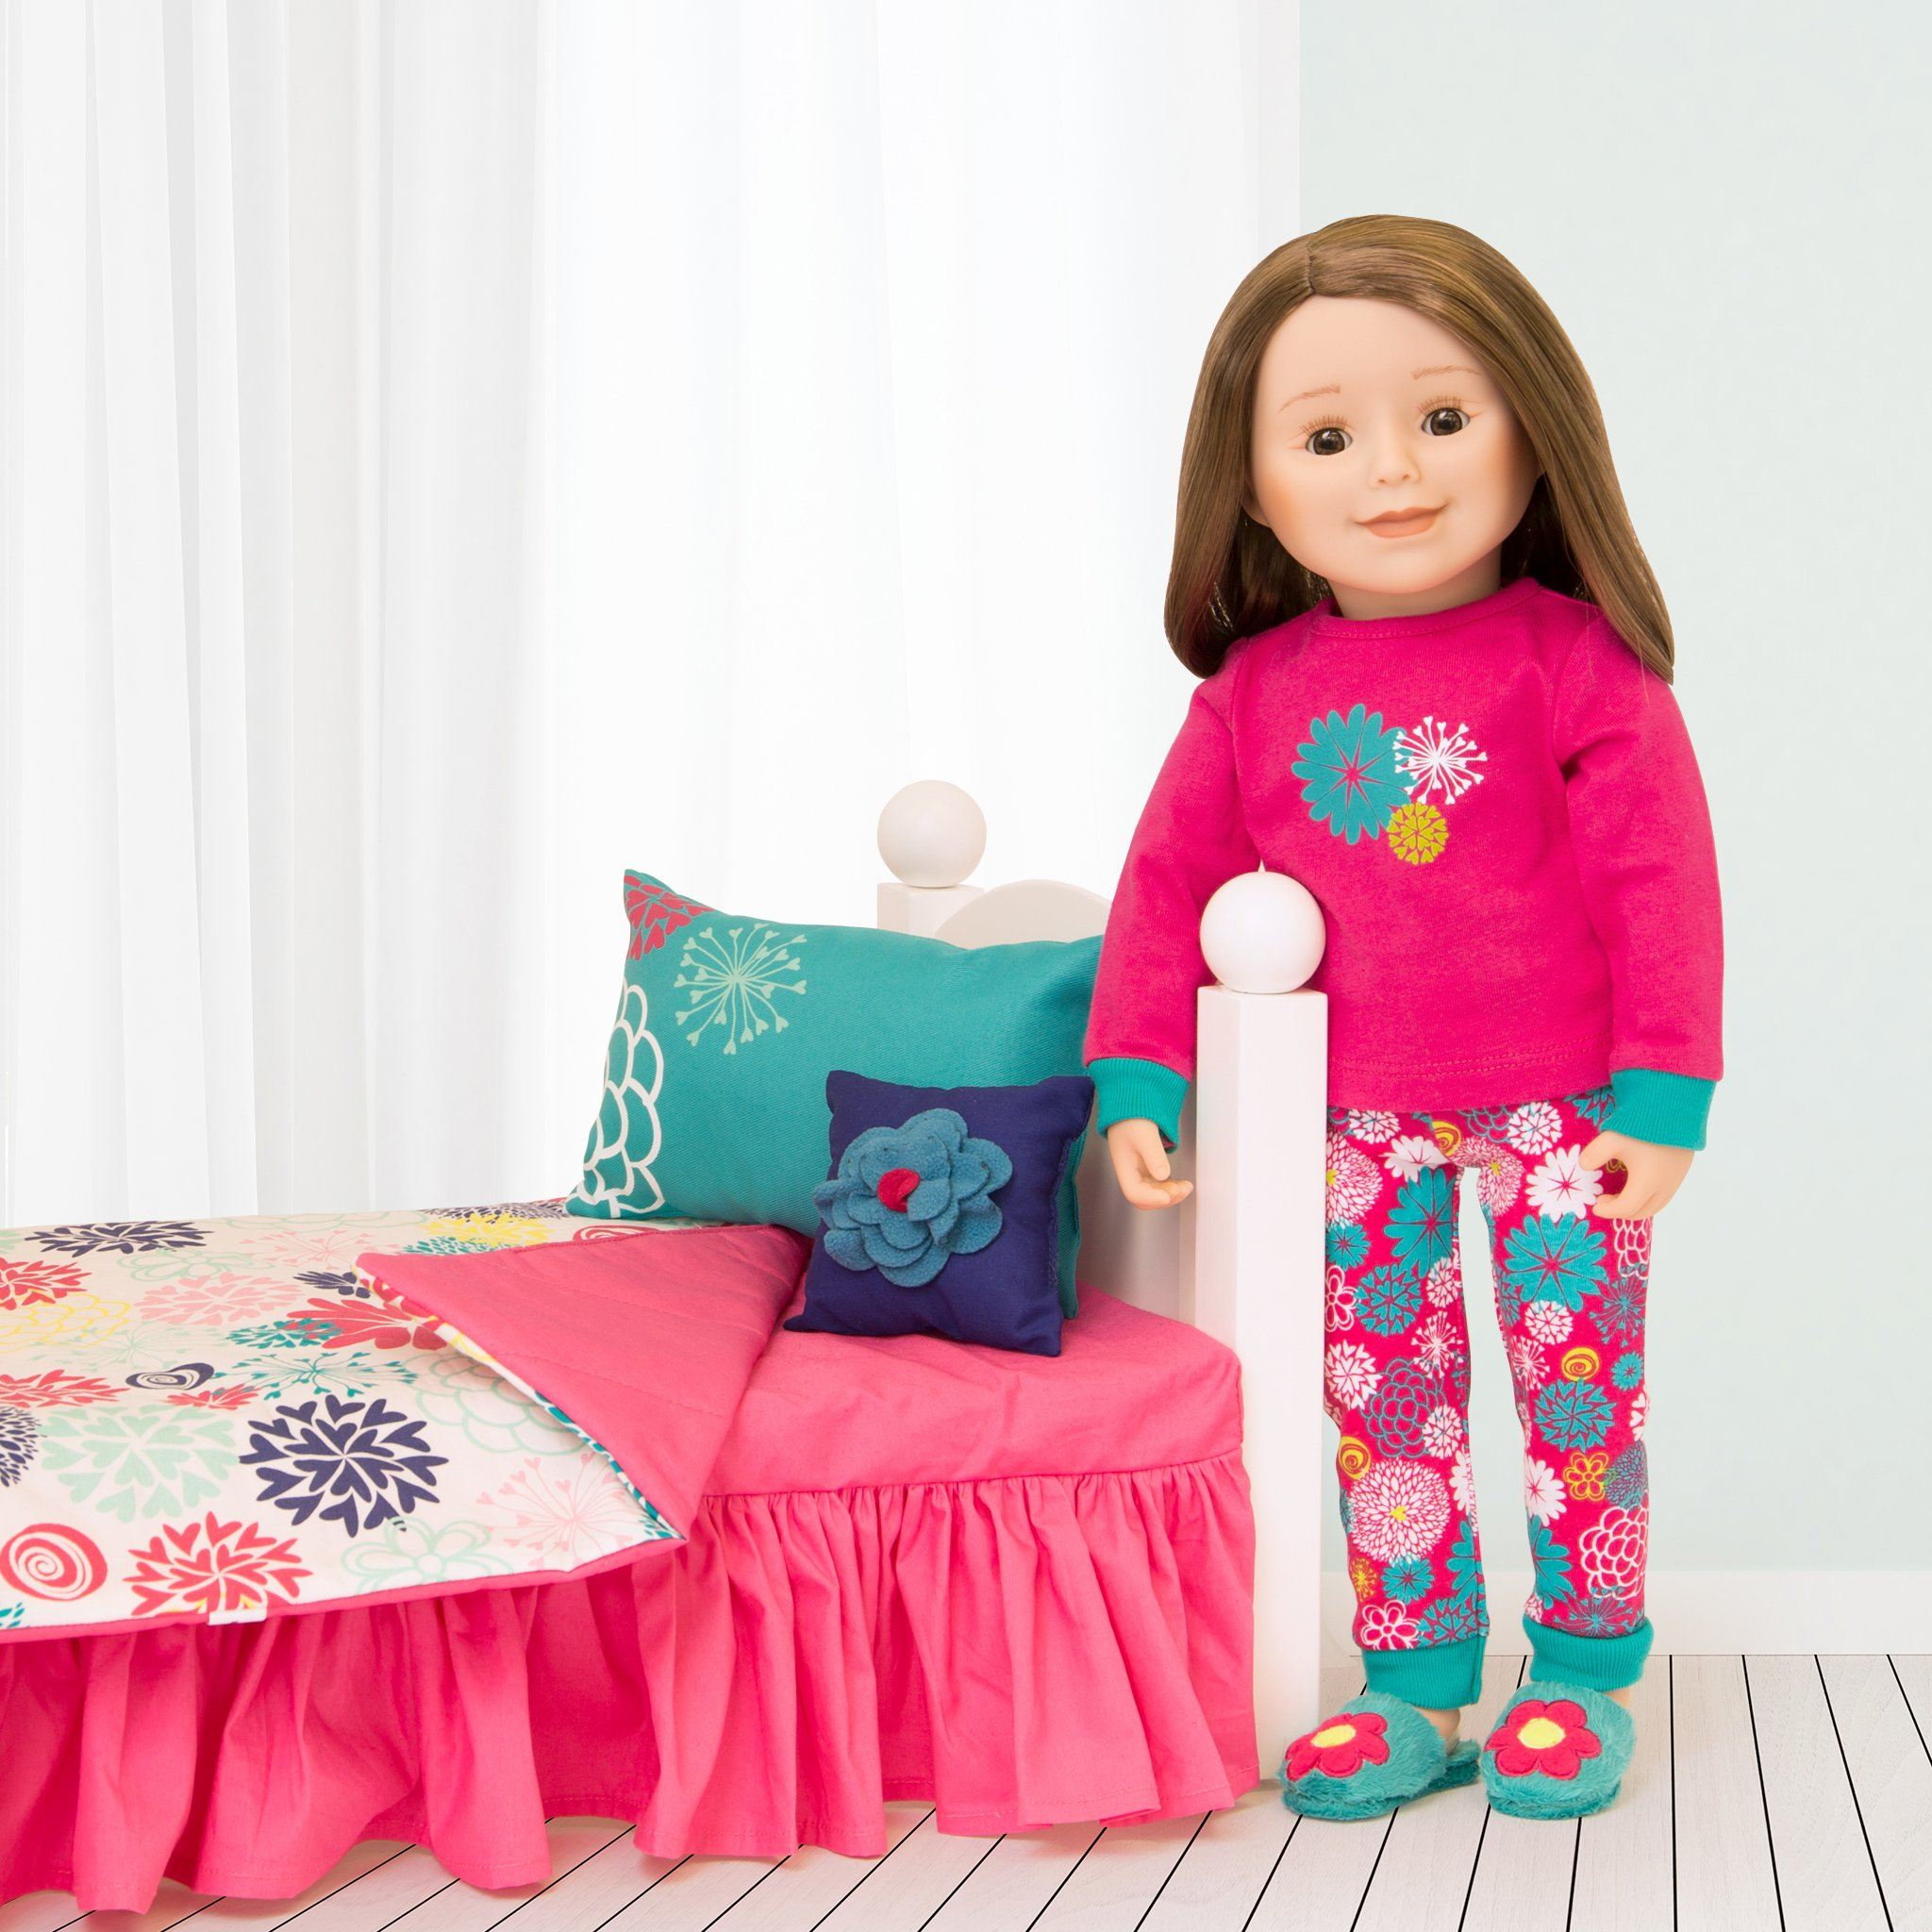 Matching pajamas for doll and girl.  Pink and teal PJs shown on 18 inch doll with bed and bedding.